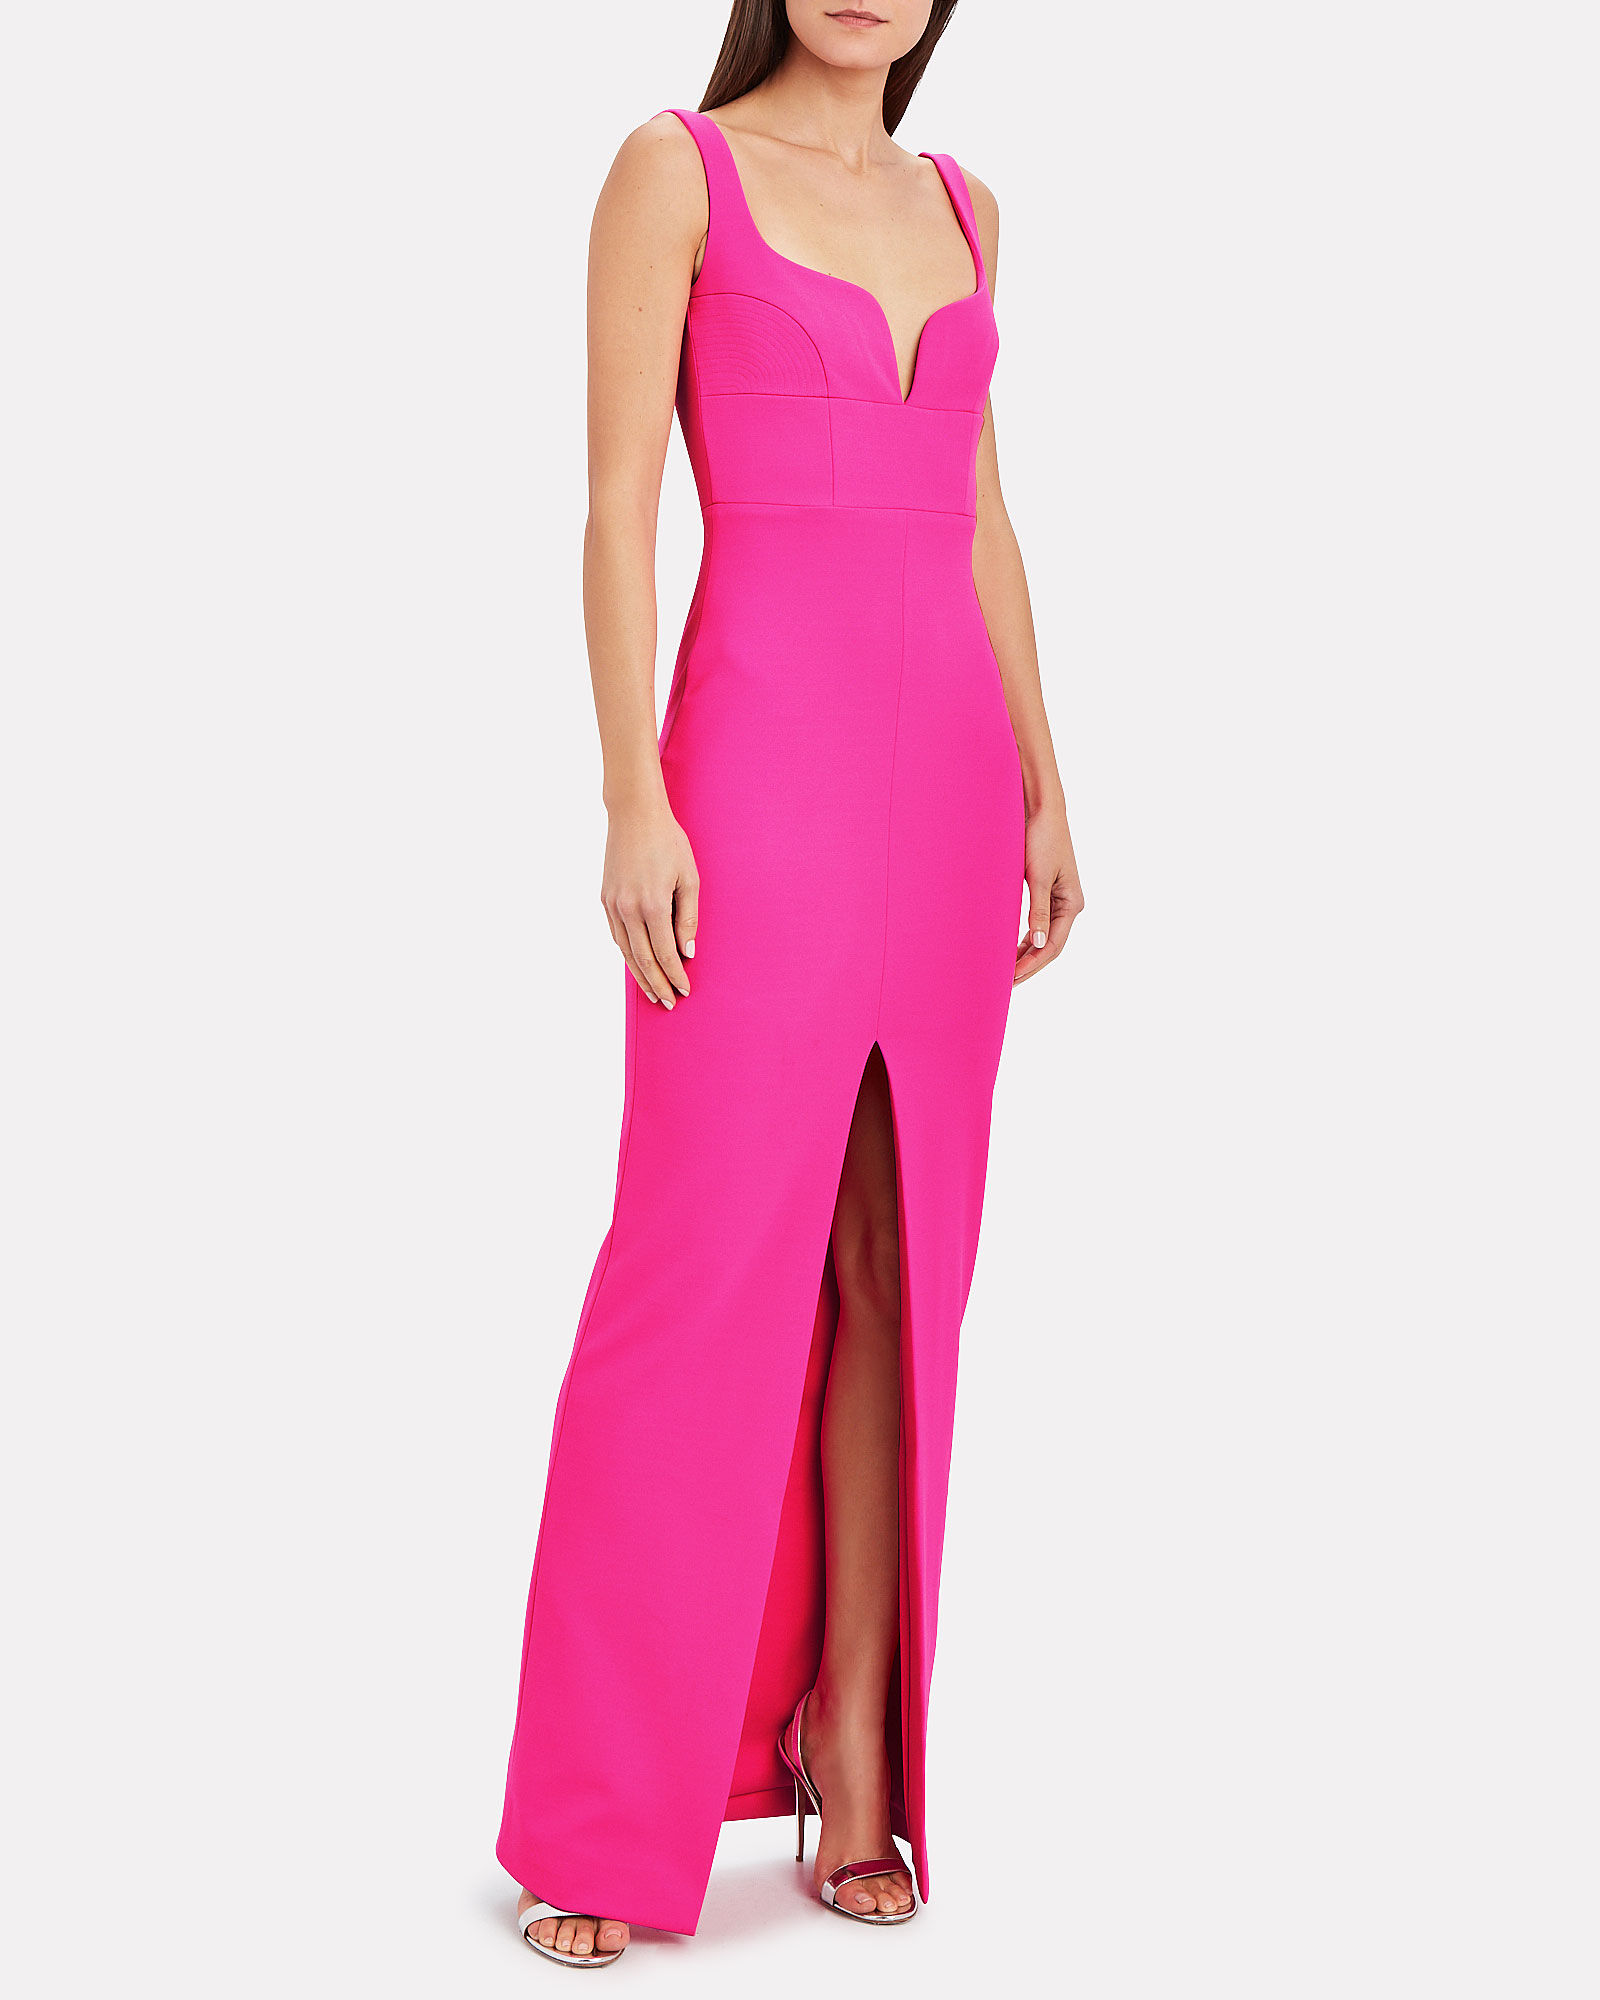 Linza Crepe Gown, PINK, hi-res